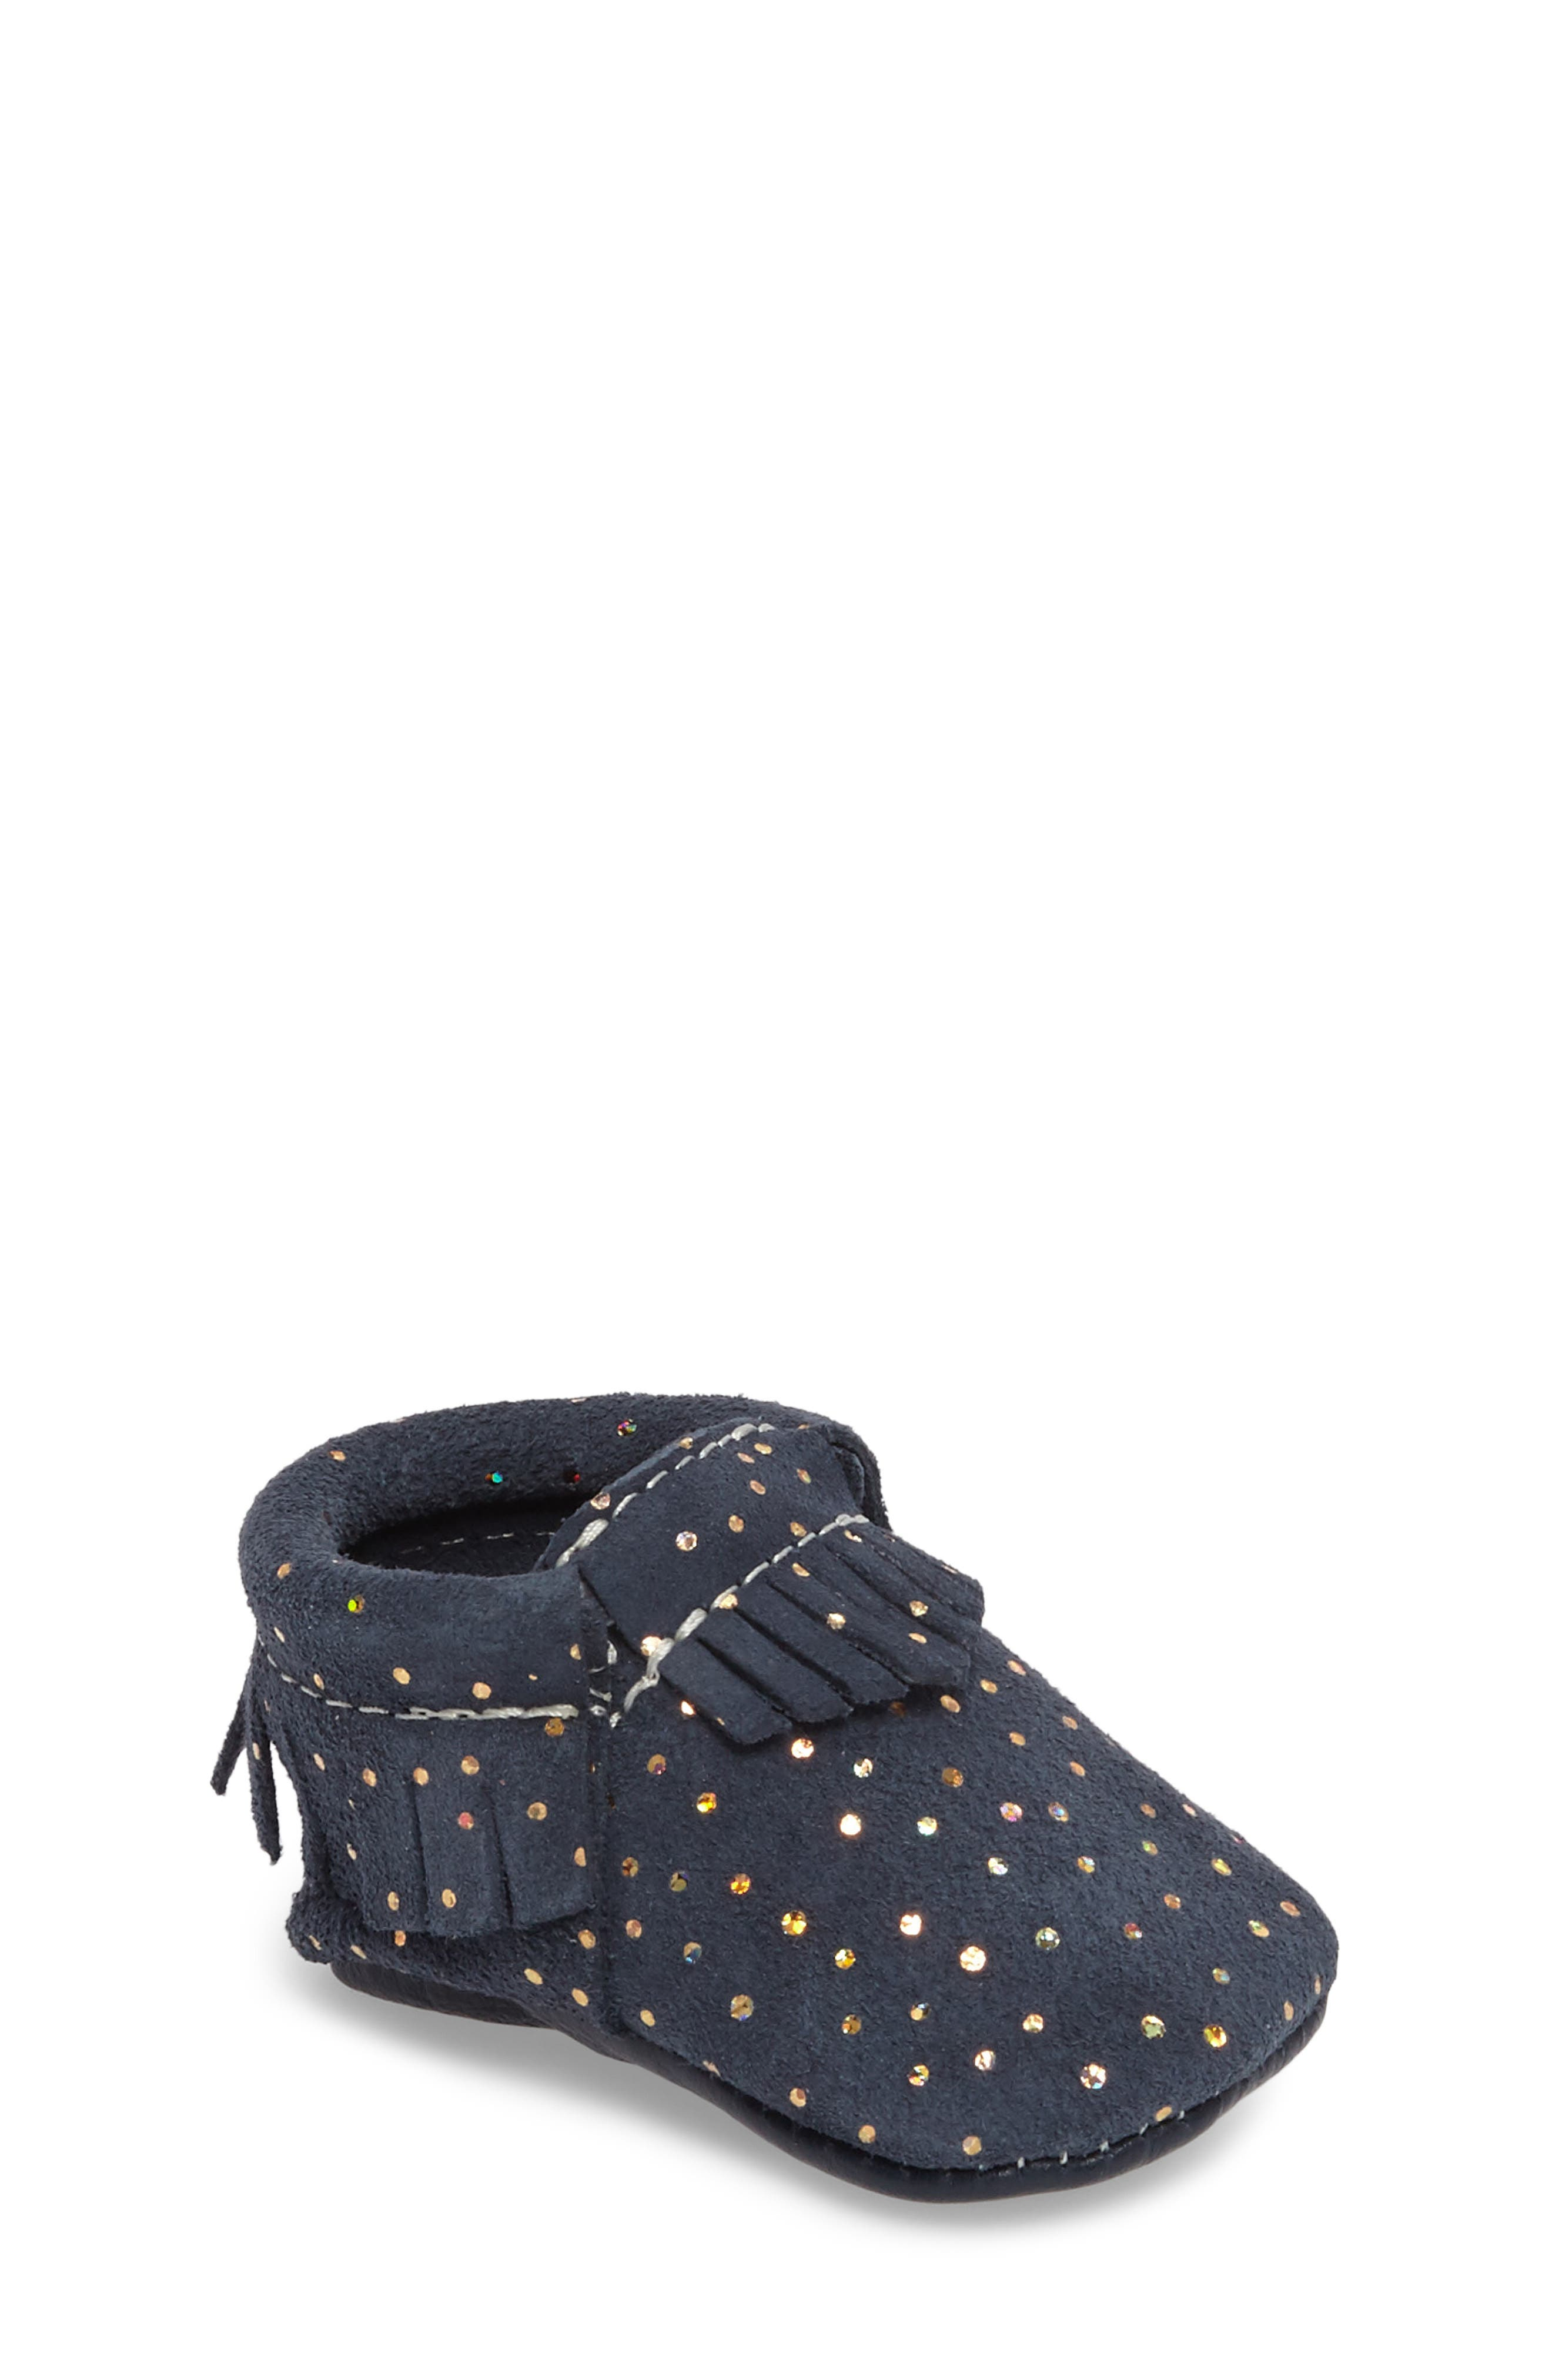 Confetti Print Moccasin,                         Main,                         color, 400